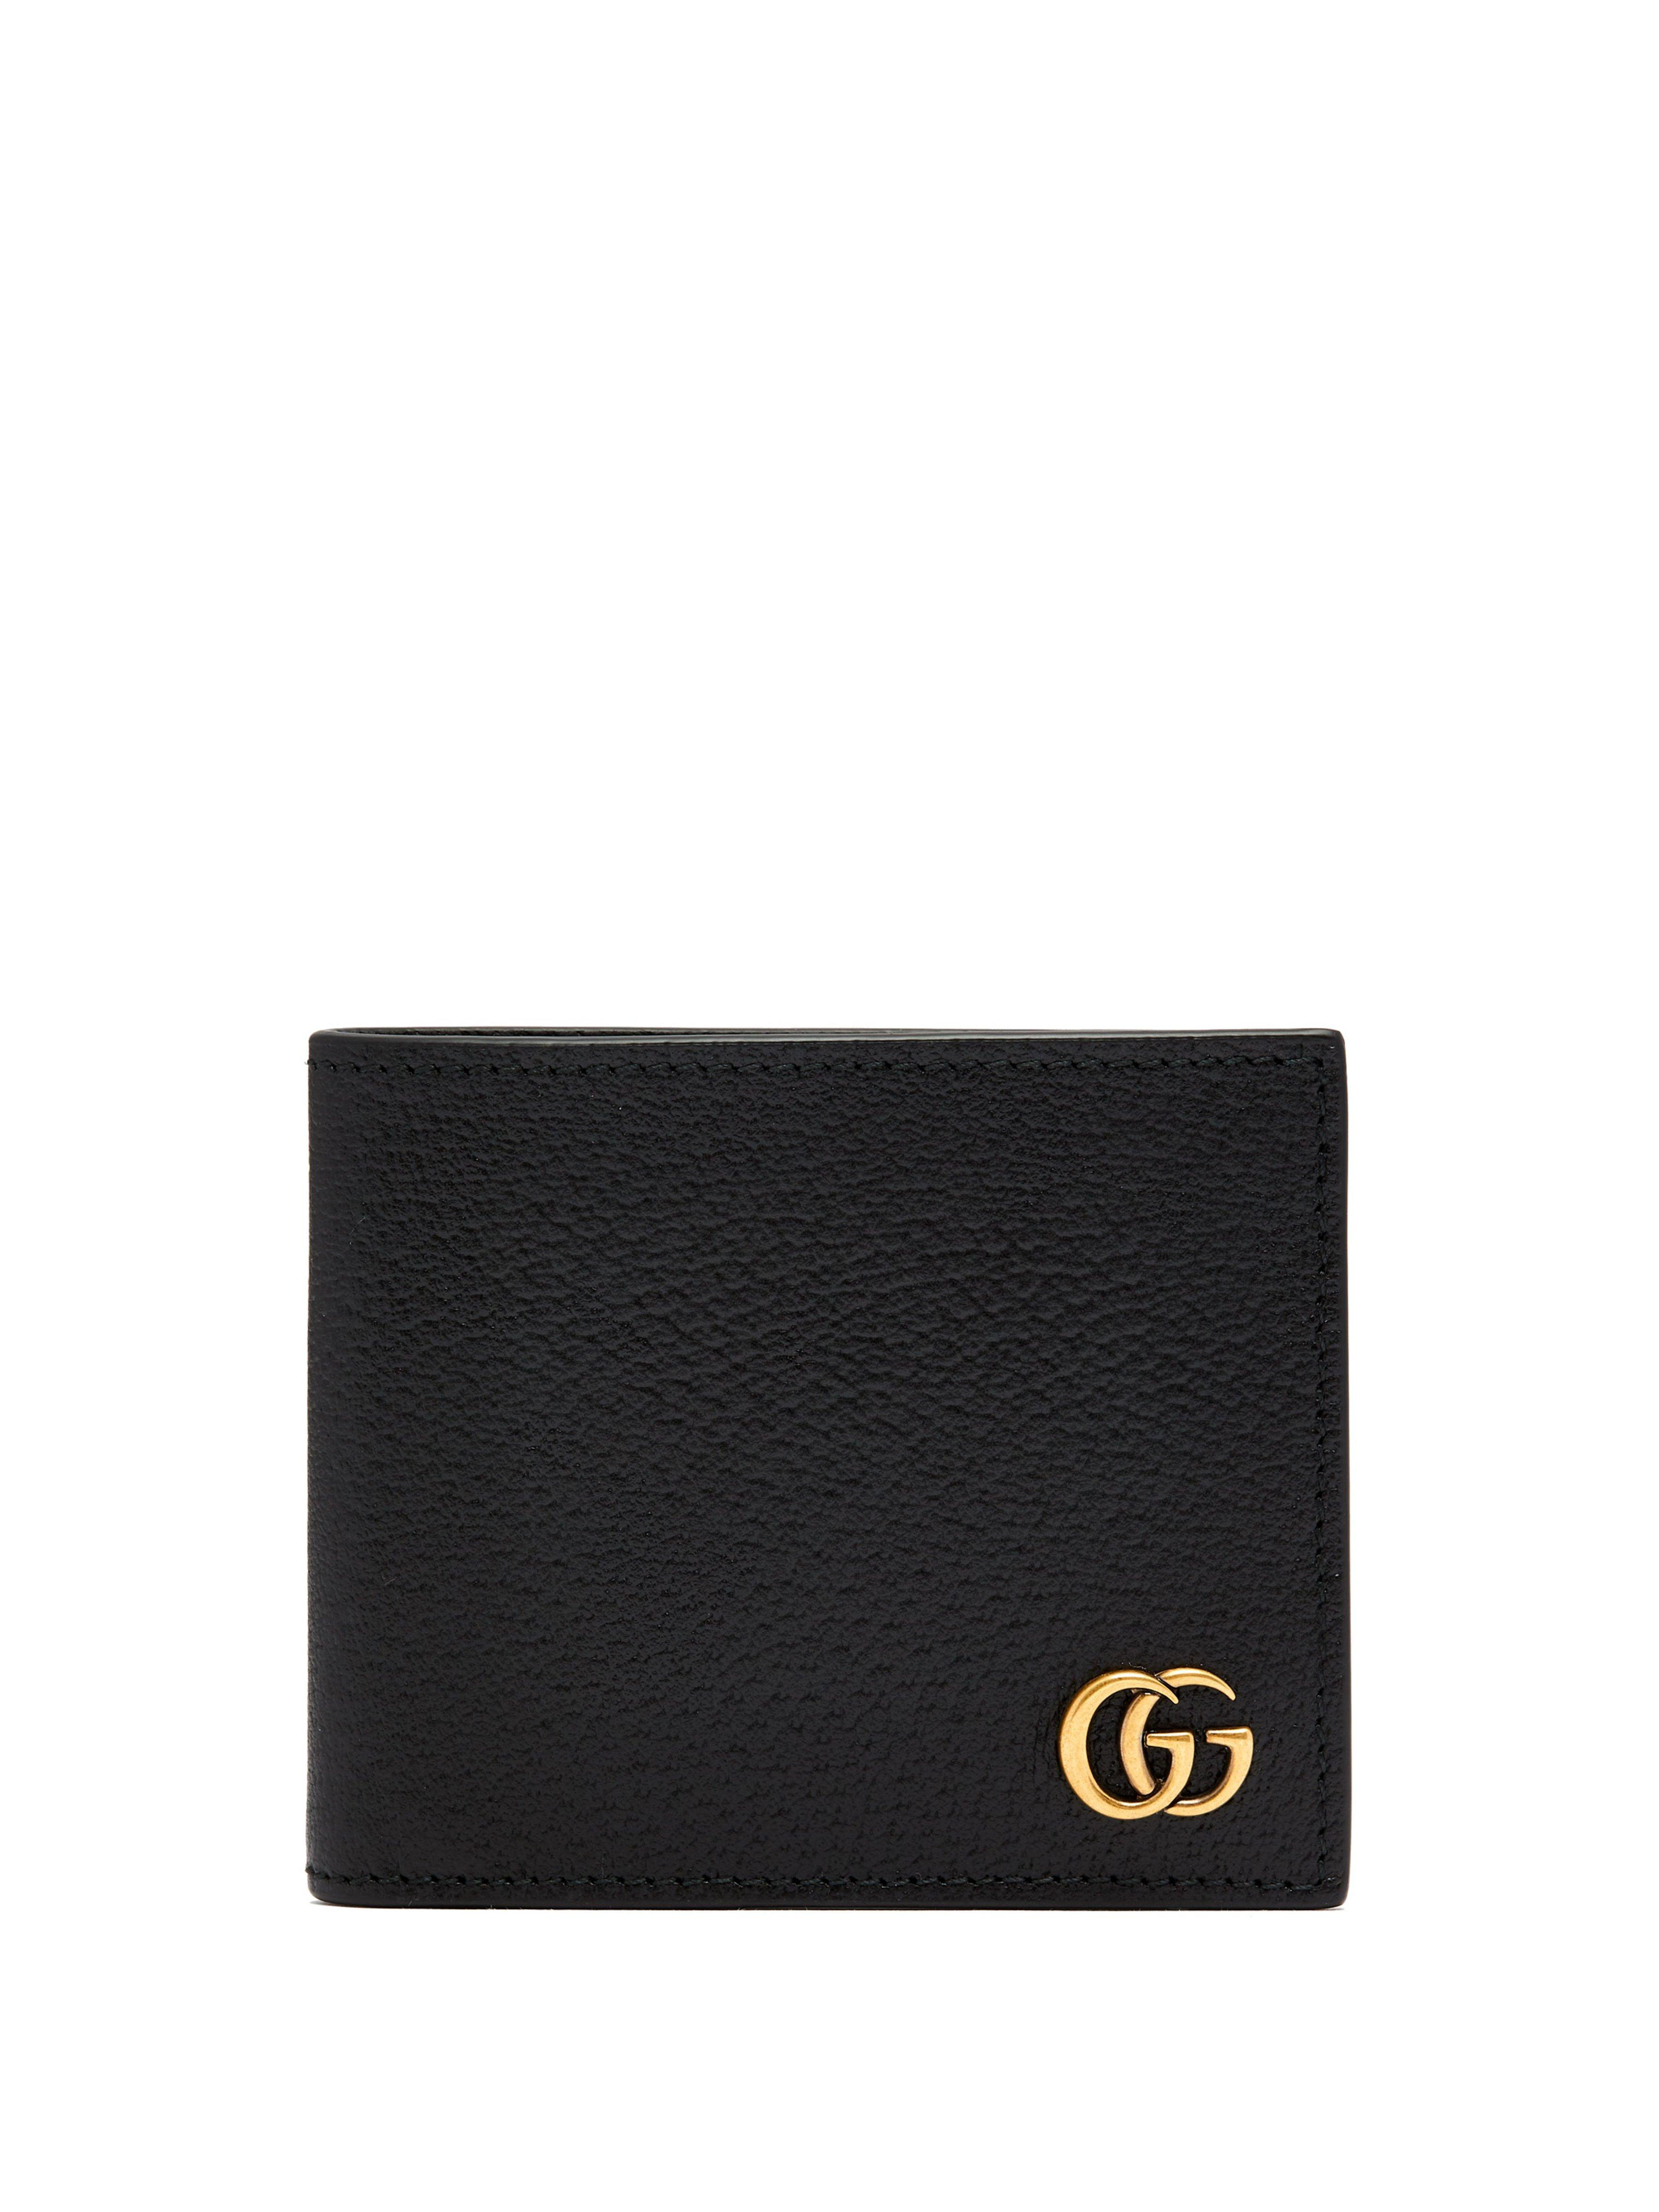 cbafedf19 Gucci Gg Marmont Leather Id Wallet in Black for Men - Save 45% - Lyst